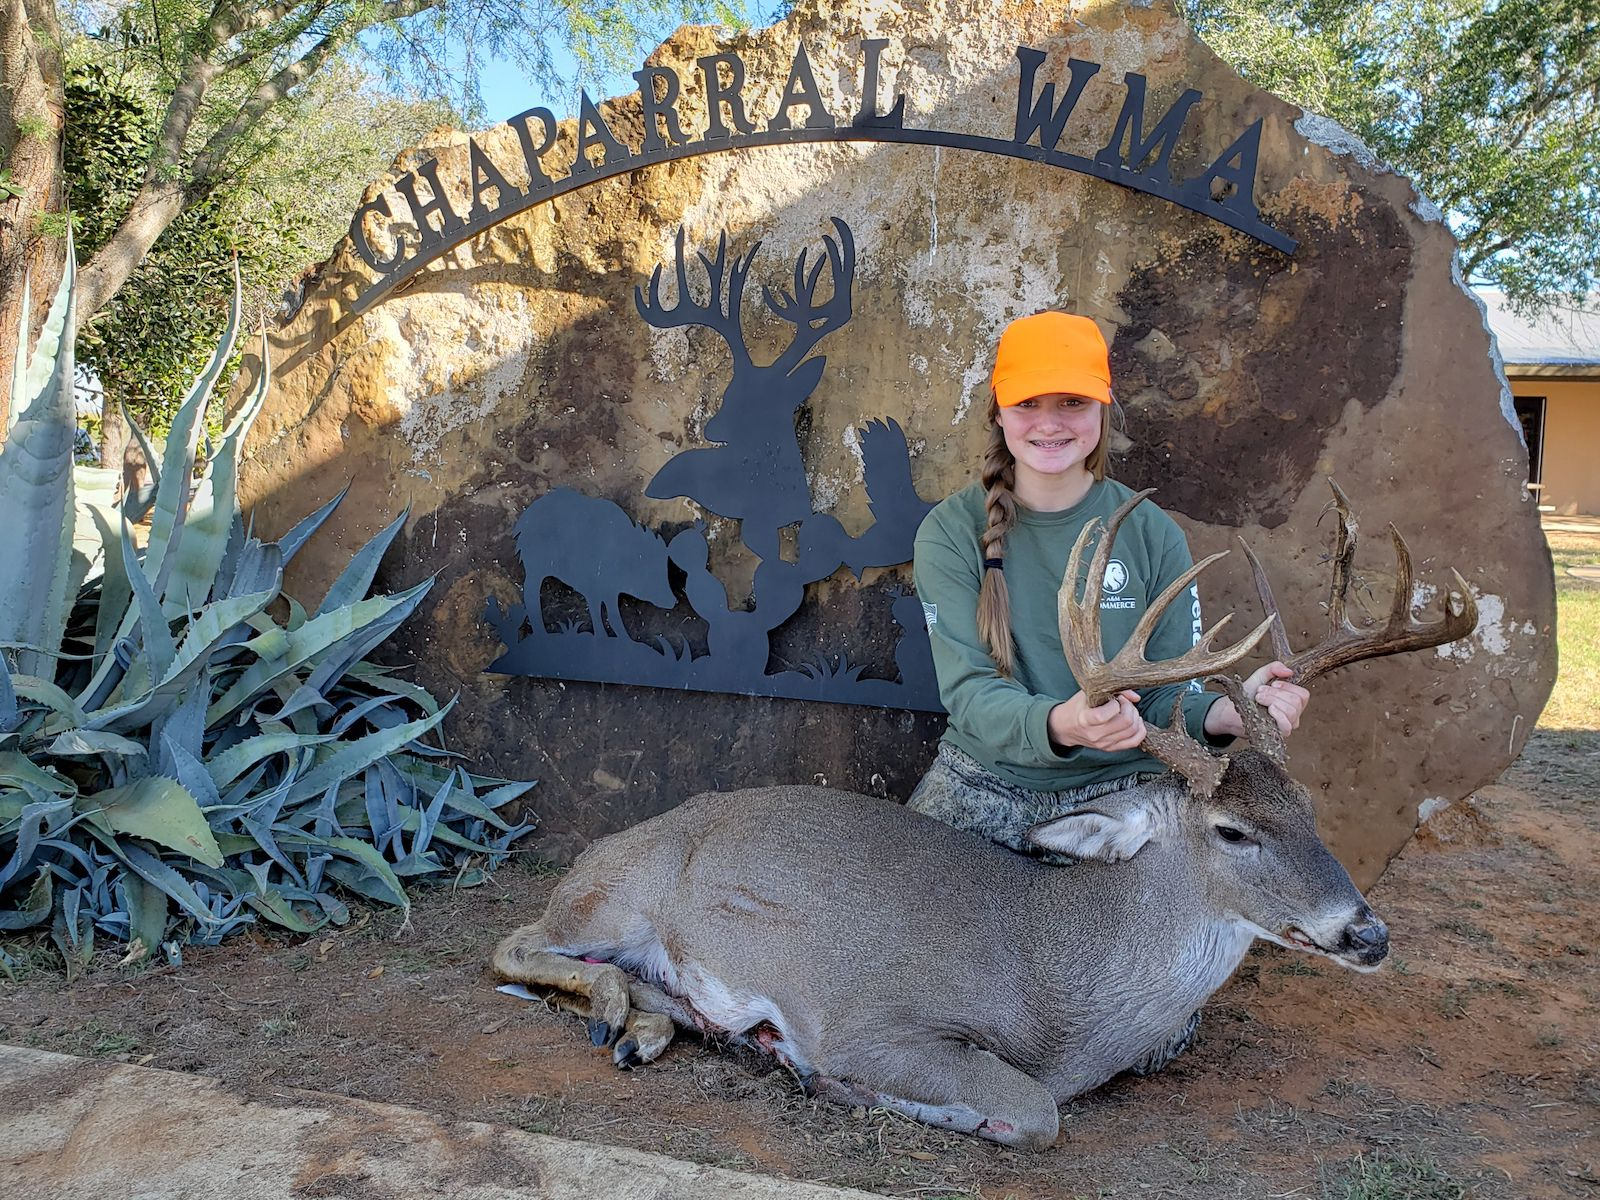 Youth hunter Katelyn Chappell of Commerce bagged this outstanding whitetail during a Youth Only draw hunt held last year at the Chaparral Wildlife Management Area in South Texas. The deer scored 169 6/8 B&C score.